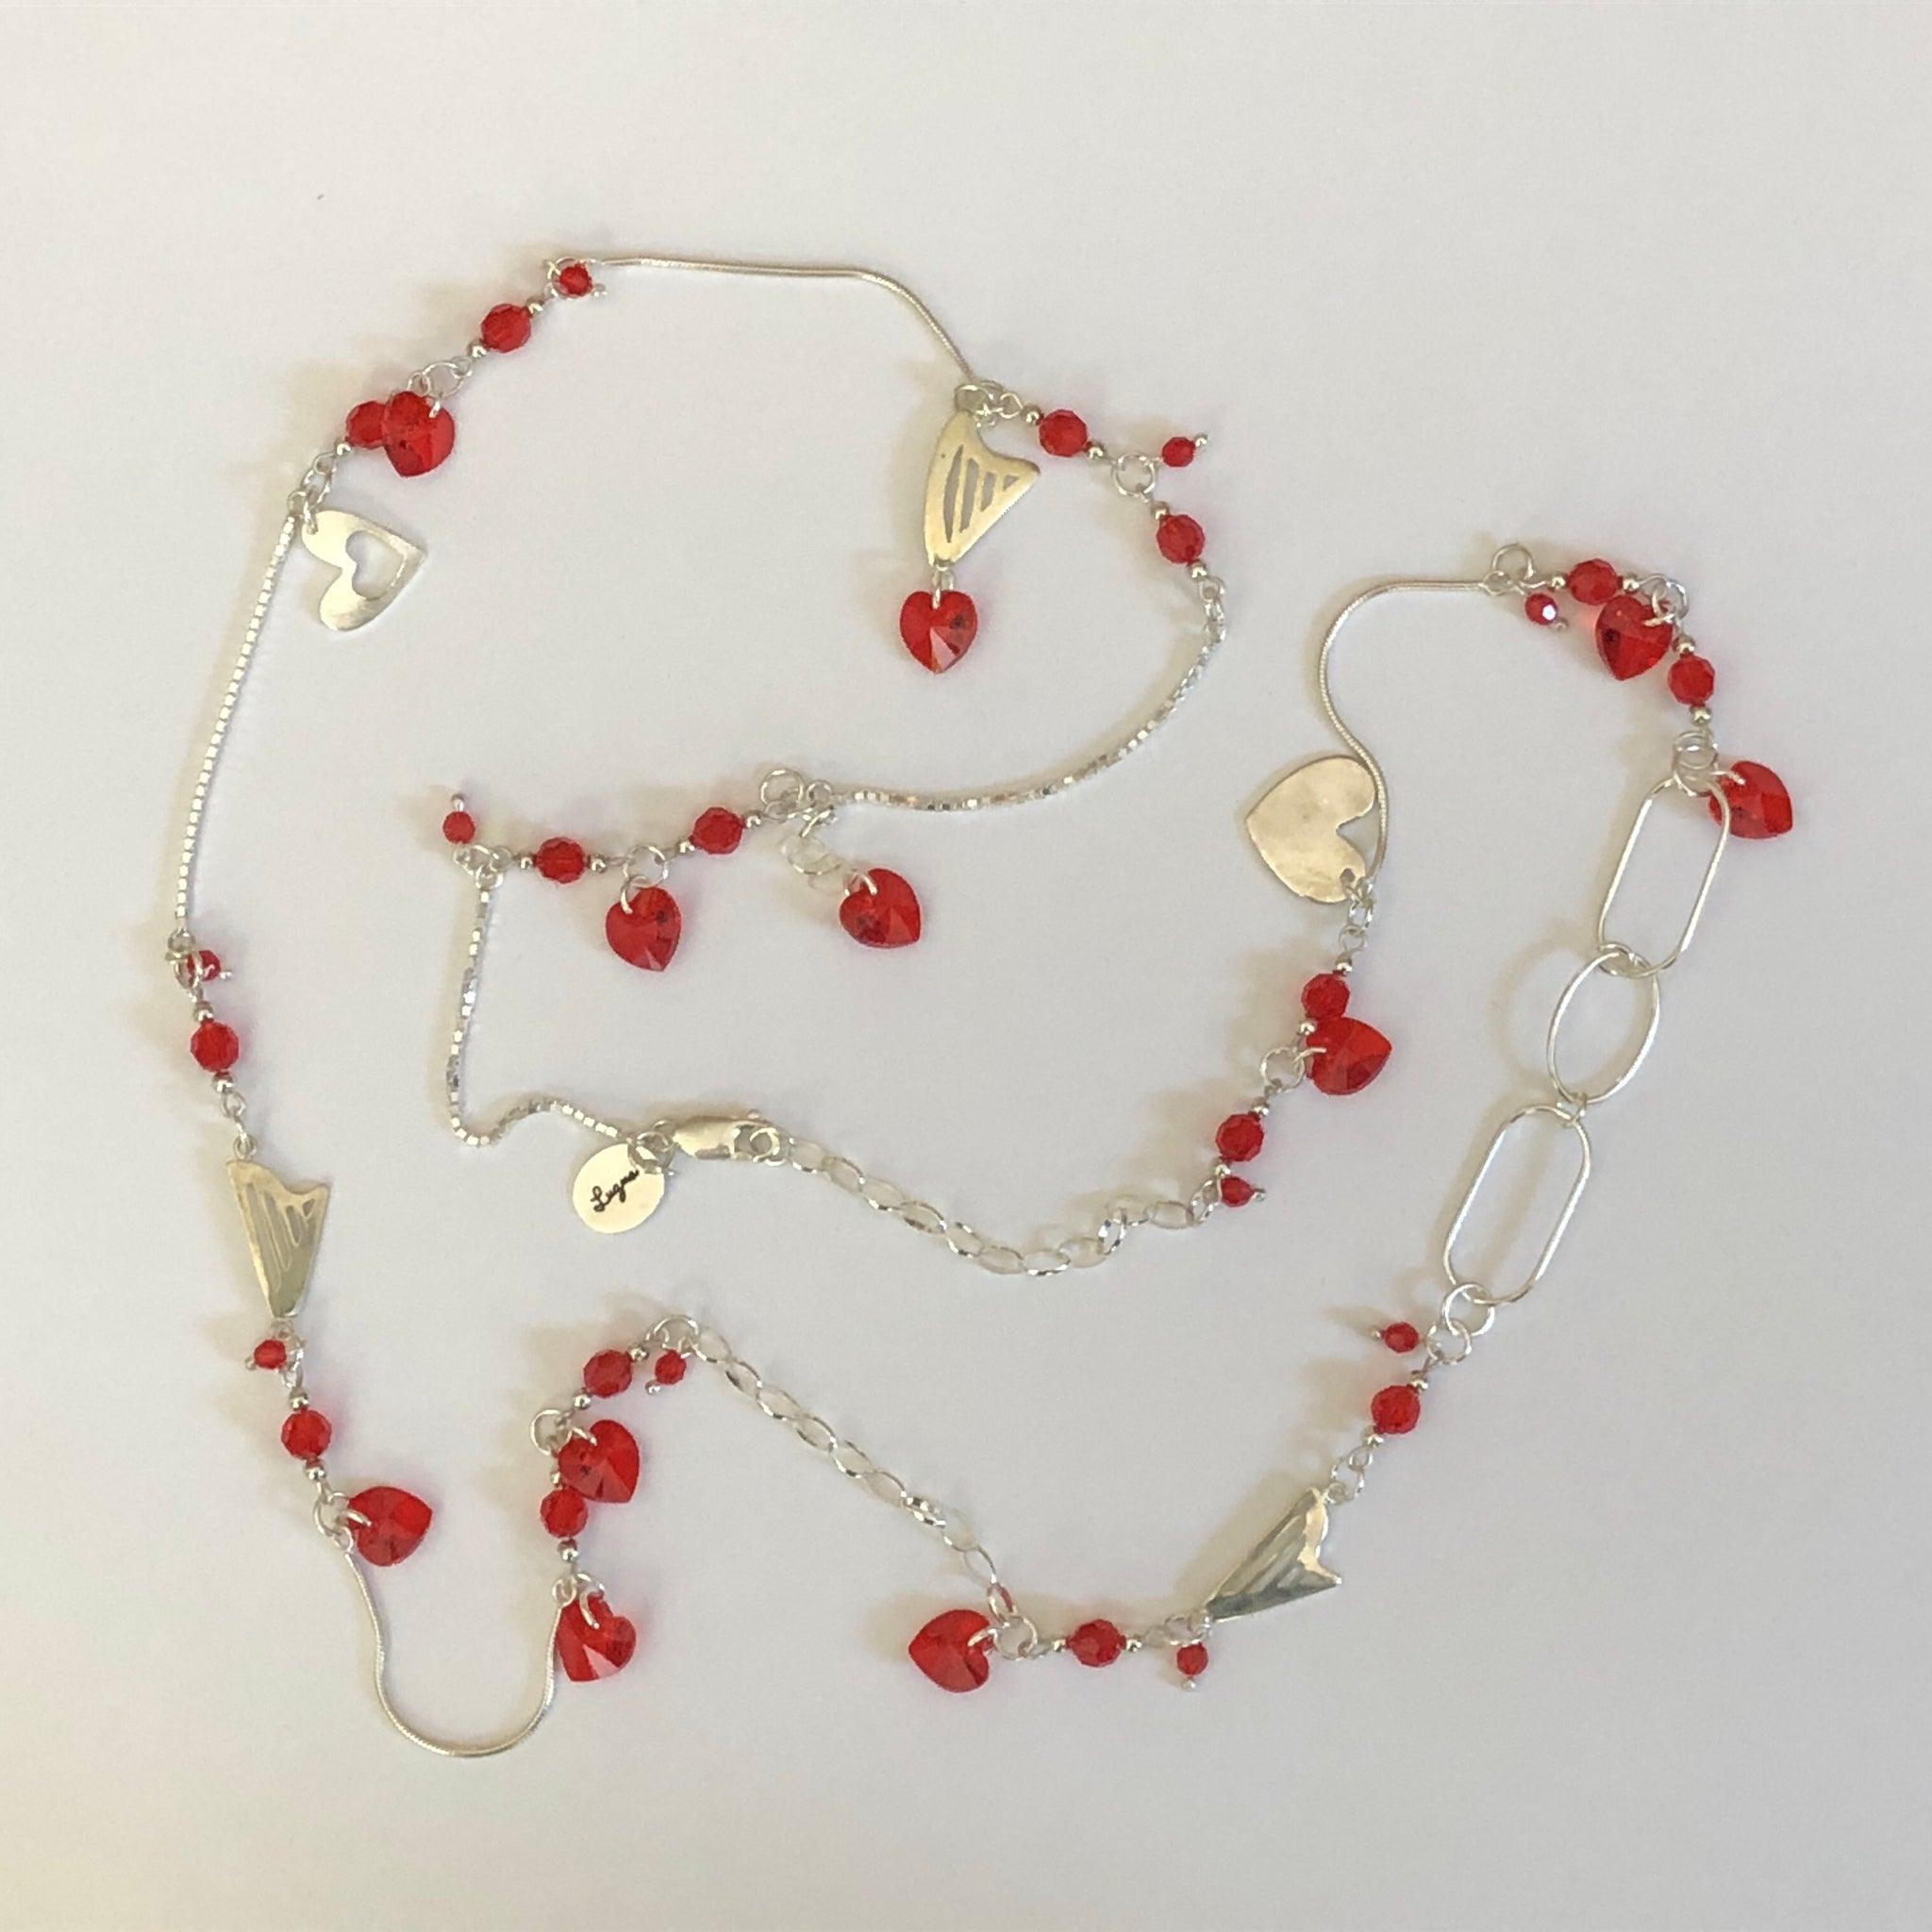 LONG NECKLACE WITH HARPS & RED SWAROVSKI HEARTS & CRYSTALS